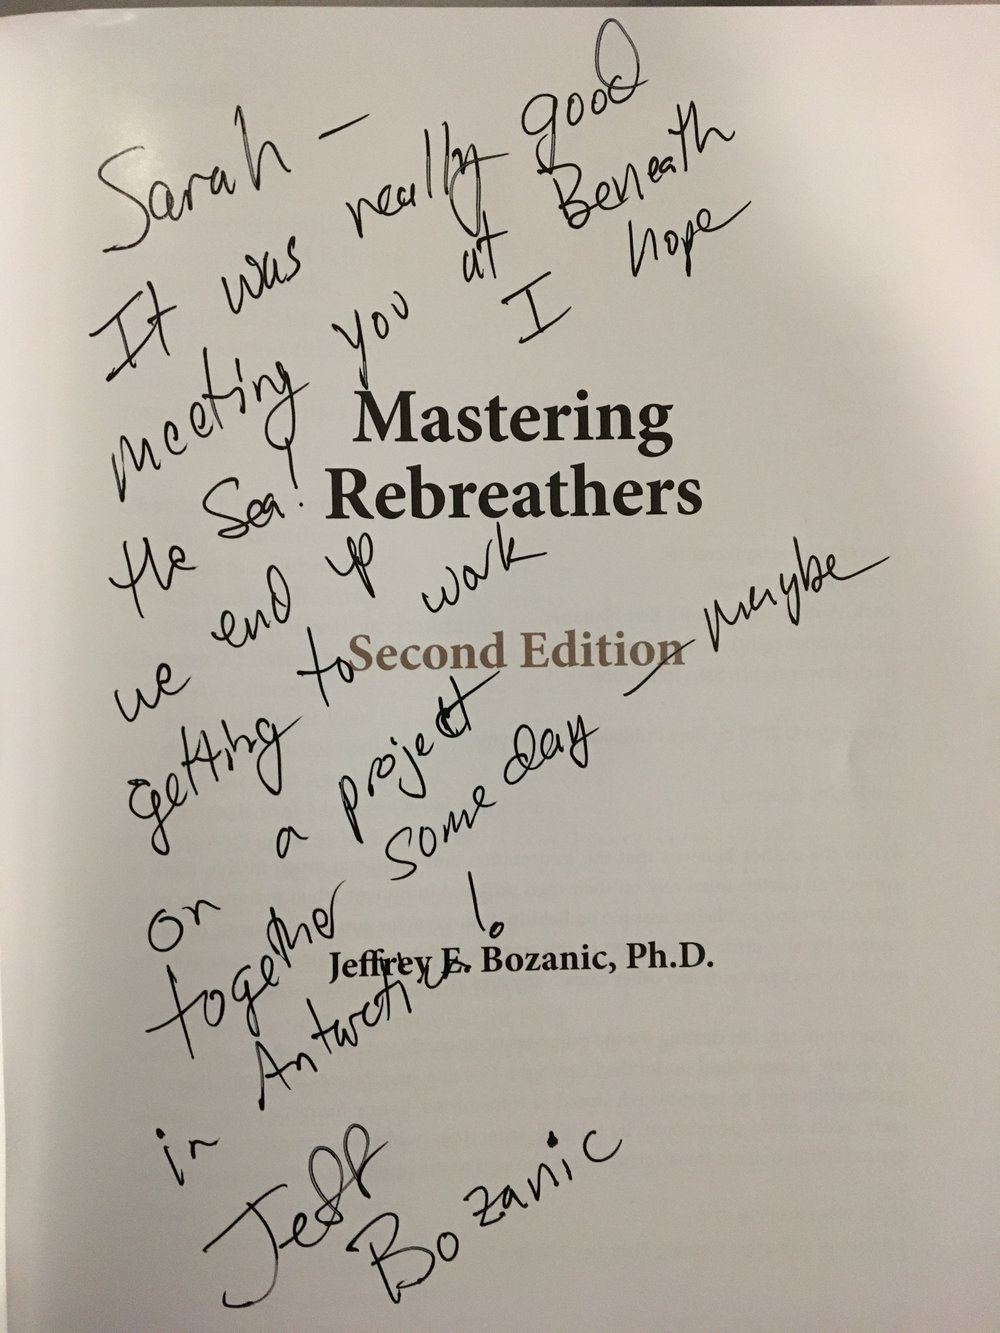 Dr Jeff Bozanic - Mastering Rebreathers 2nd Edition - Great to speak to him about scientific diving in Antarctica!